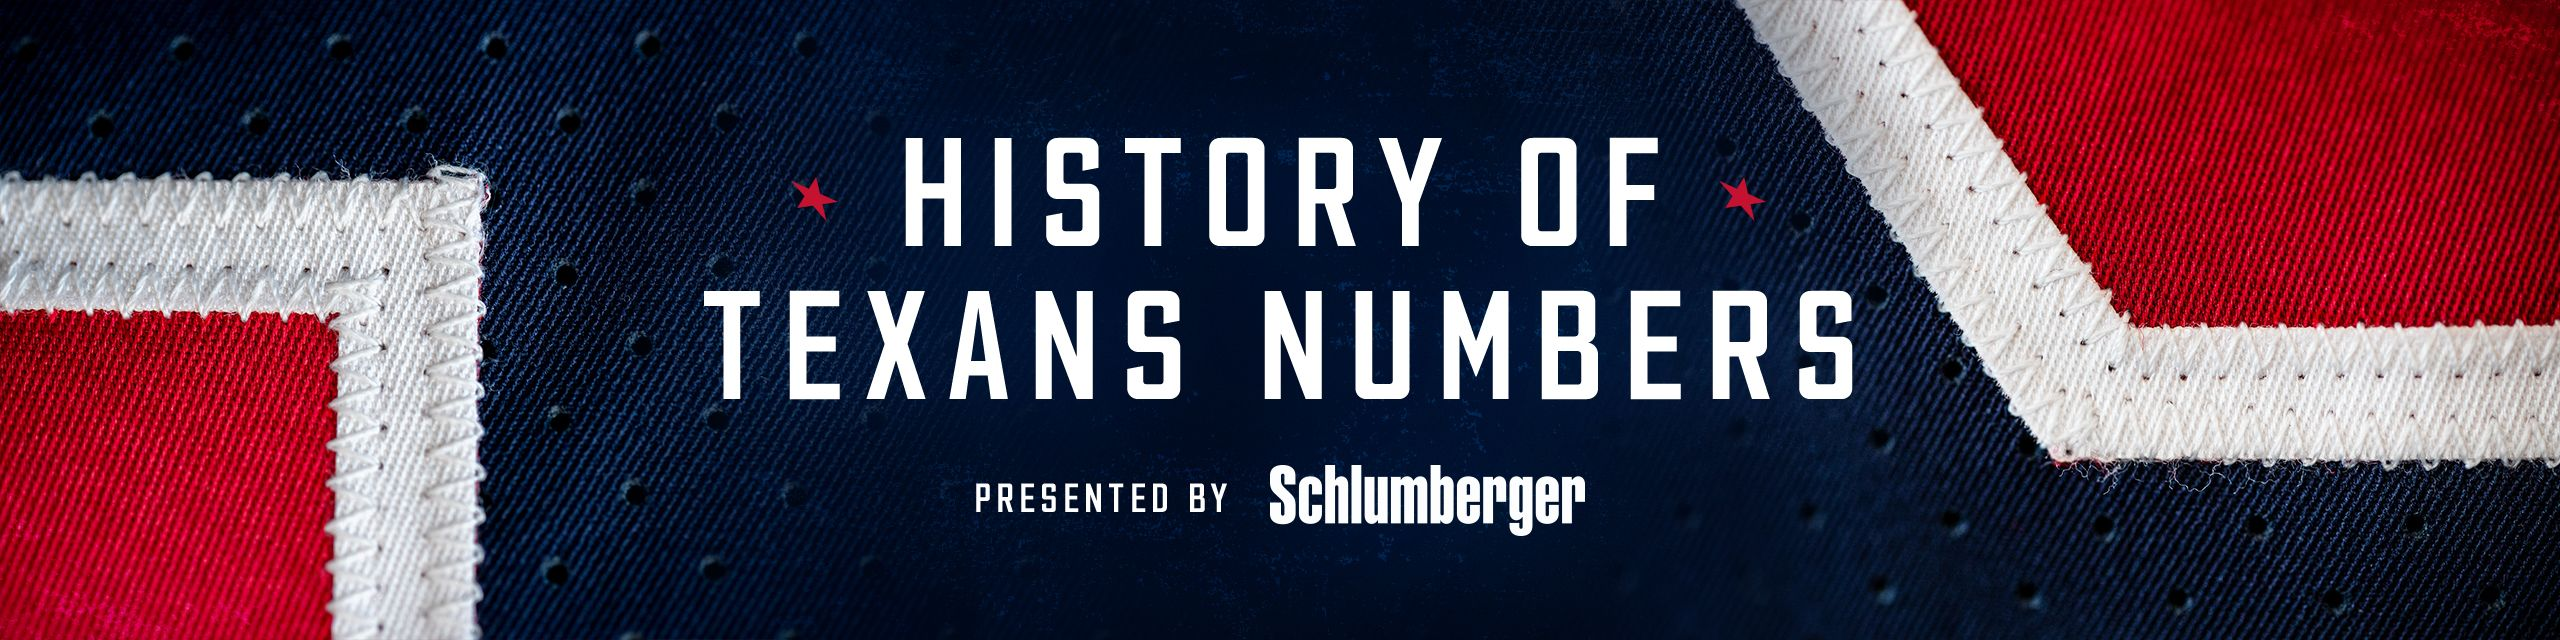 History of Texans Numbers presented by Schlumberger